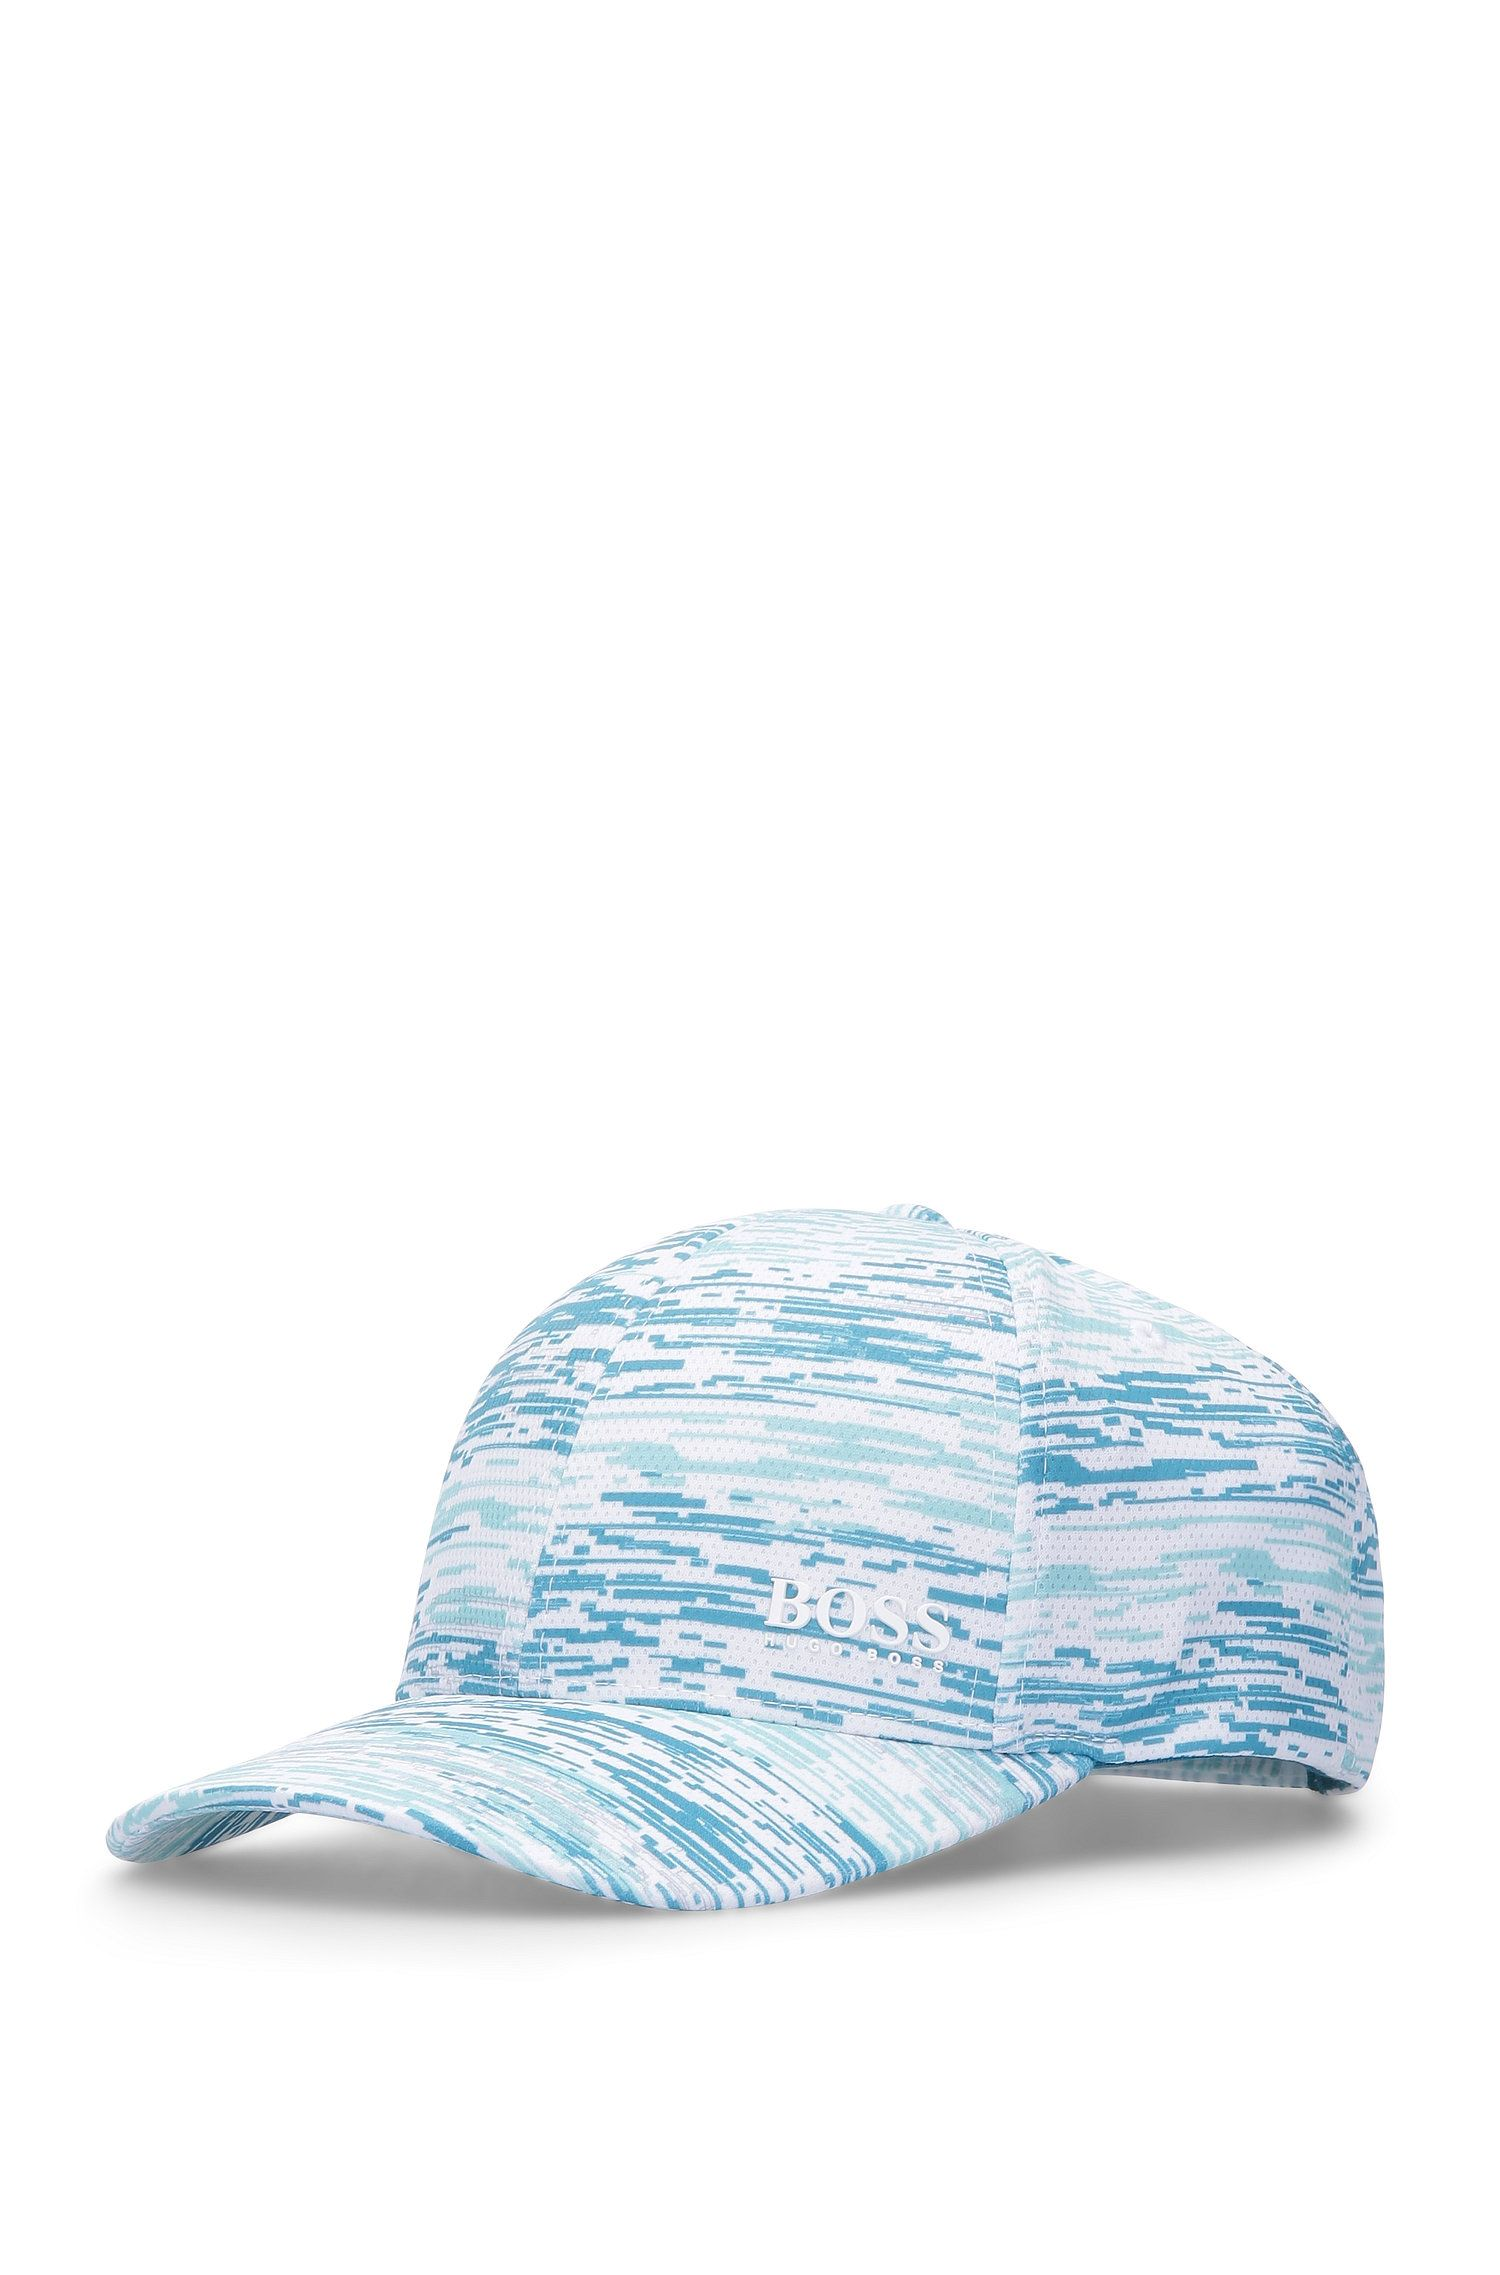 Baseball Cap with Pattern | Printcap